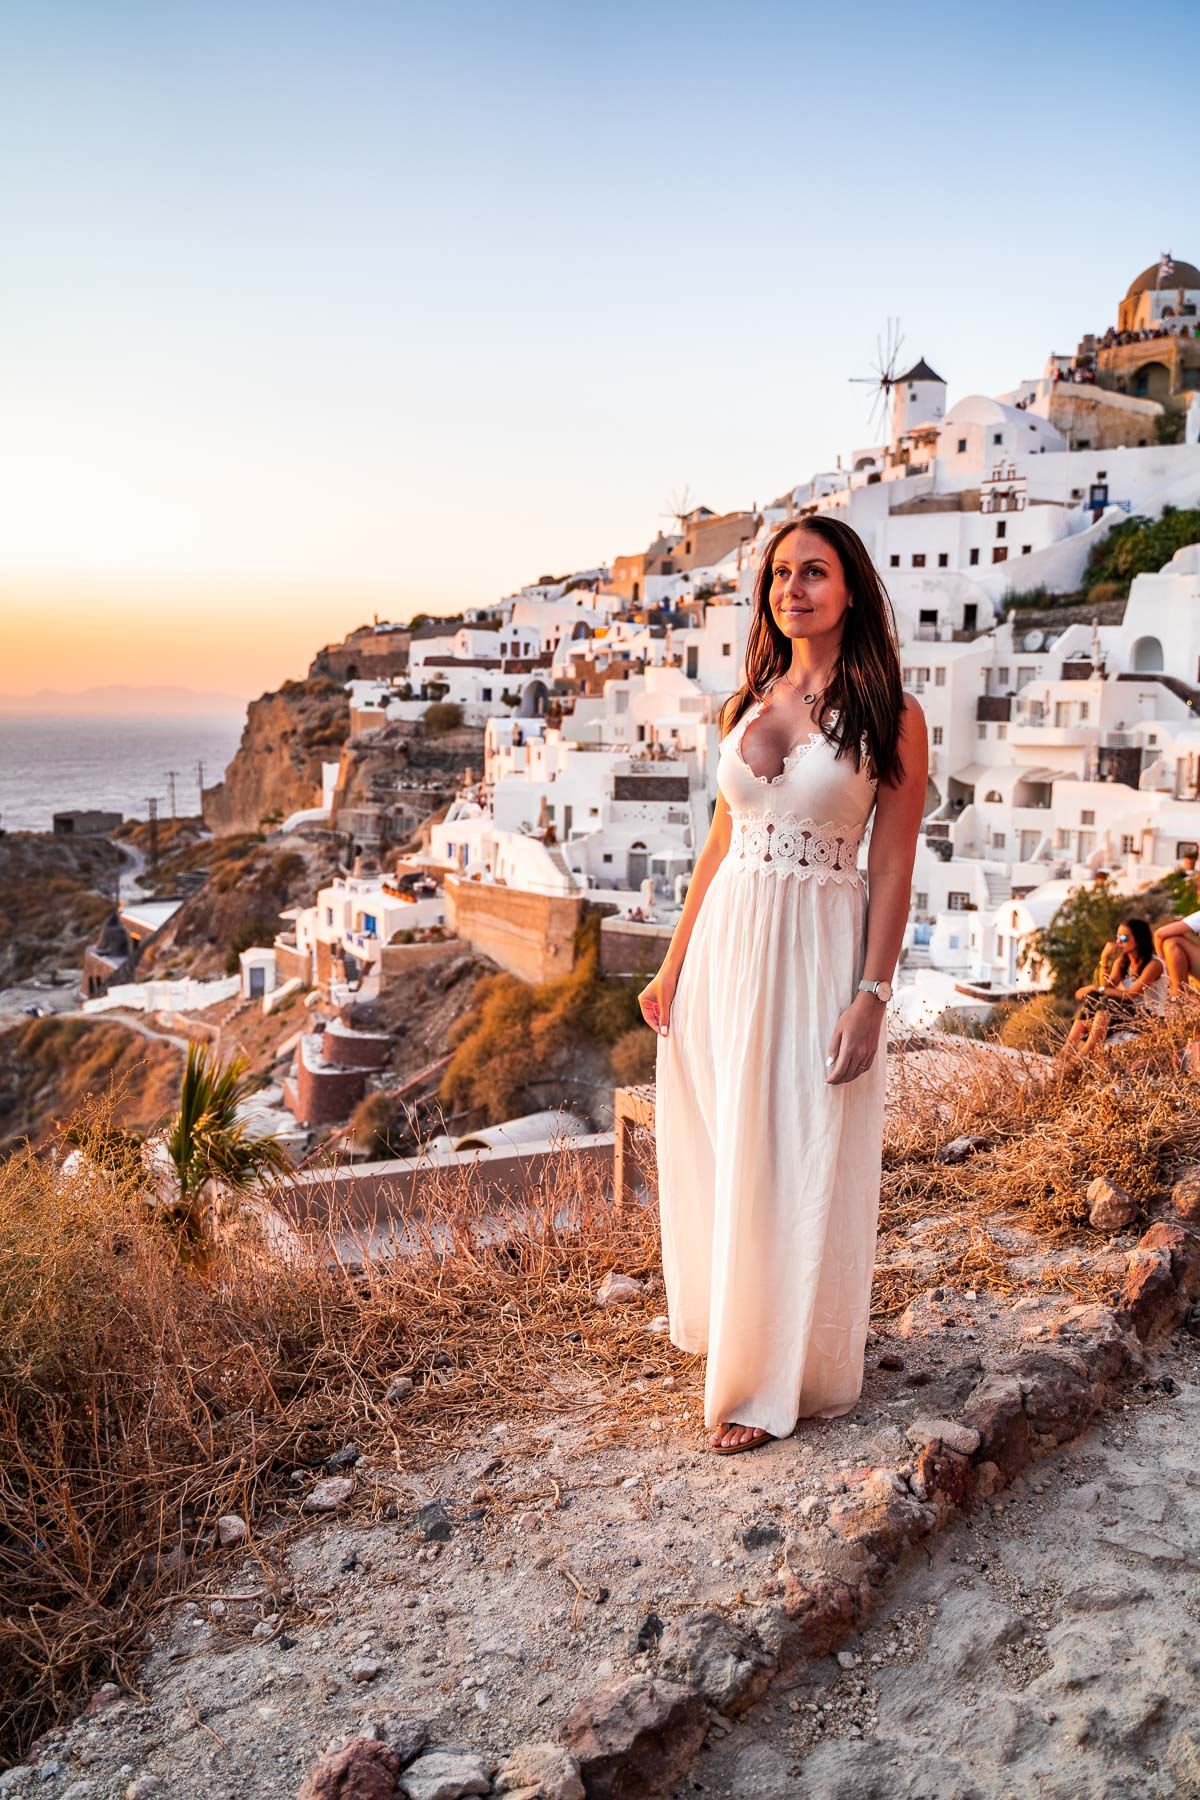 Girl in a white dress watching the sunset in Oia, Santorini